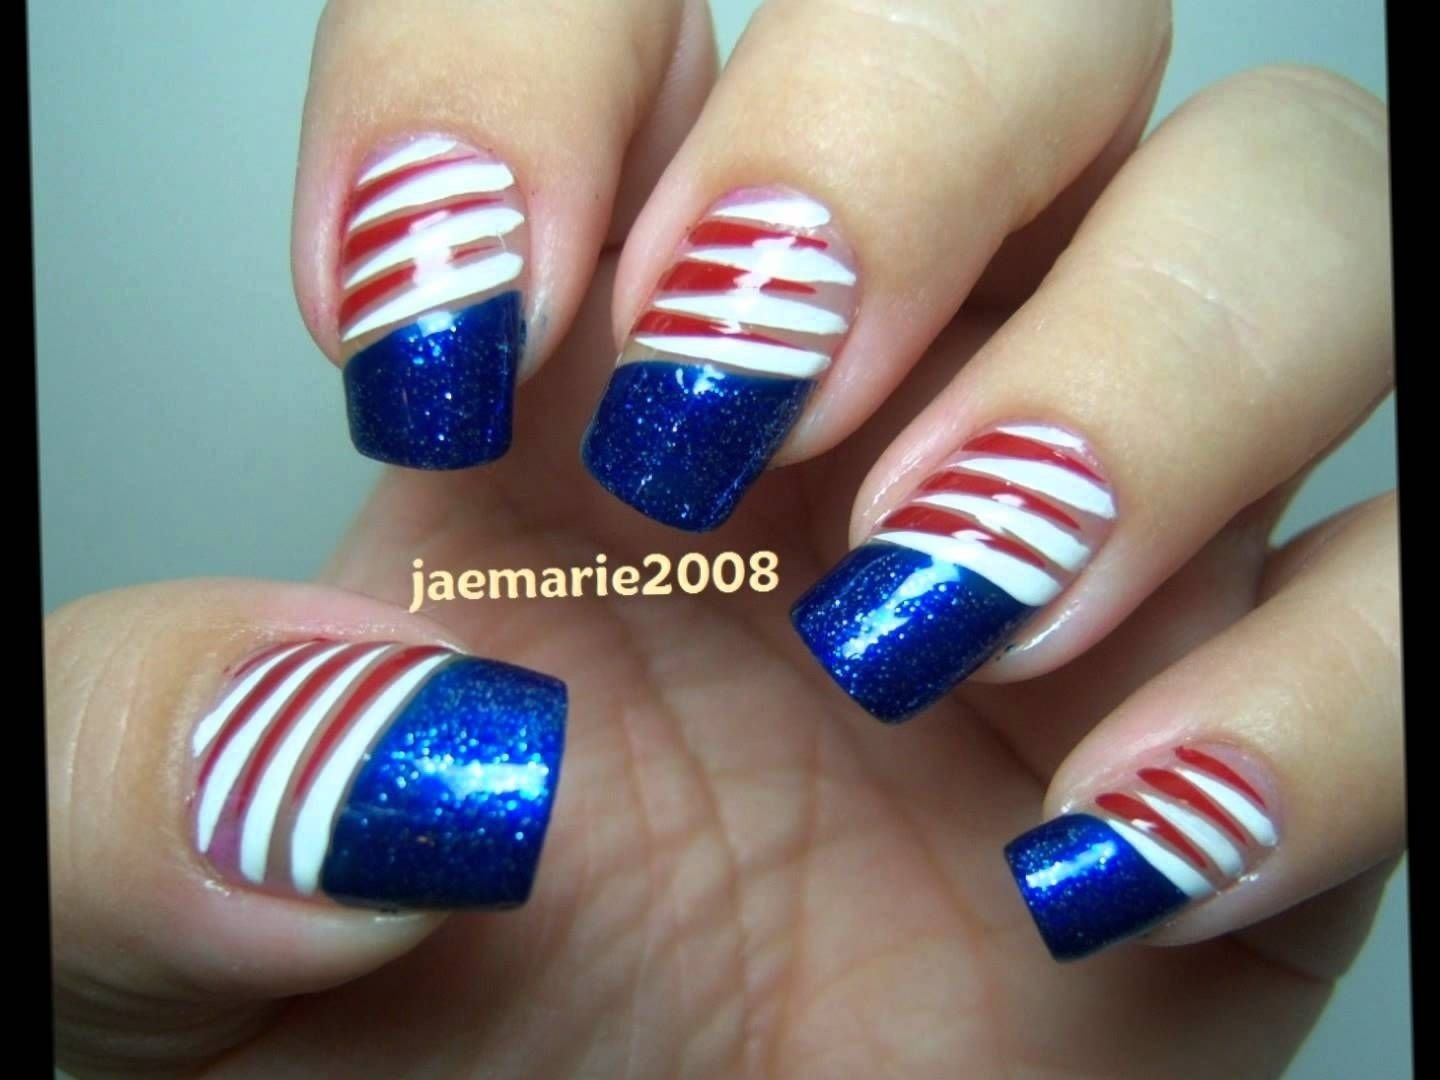 10 Awesome Fourth Of July Nail Art Ideas 4th of july nail designs ideas nail art pinterest acrylic nail 1